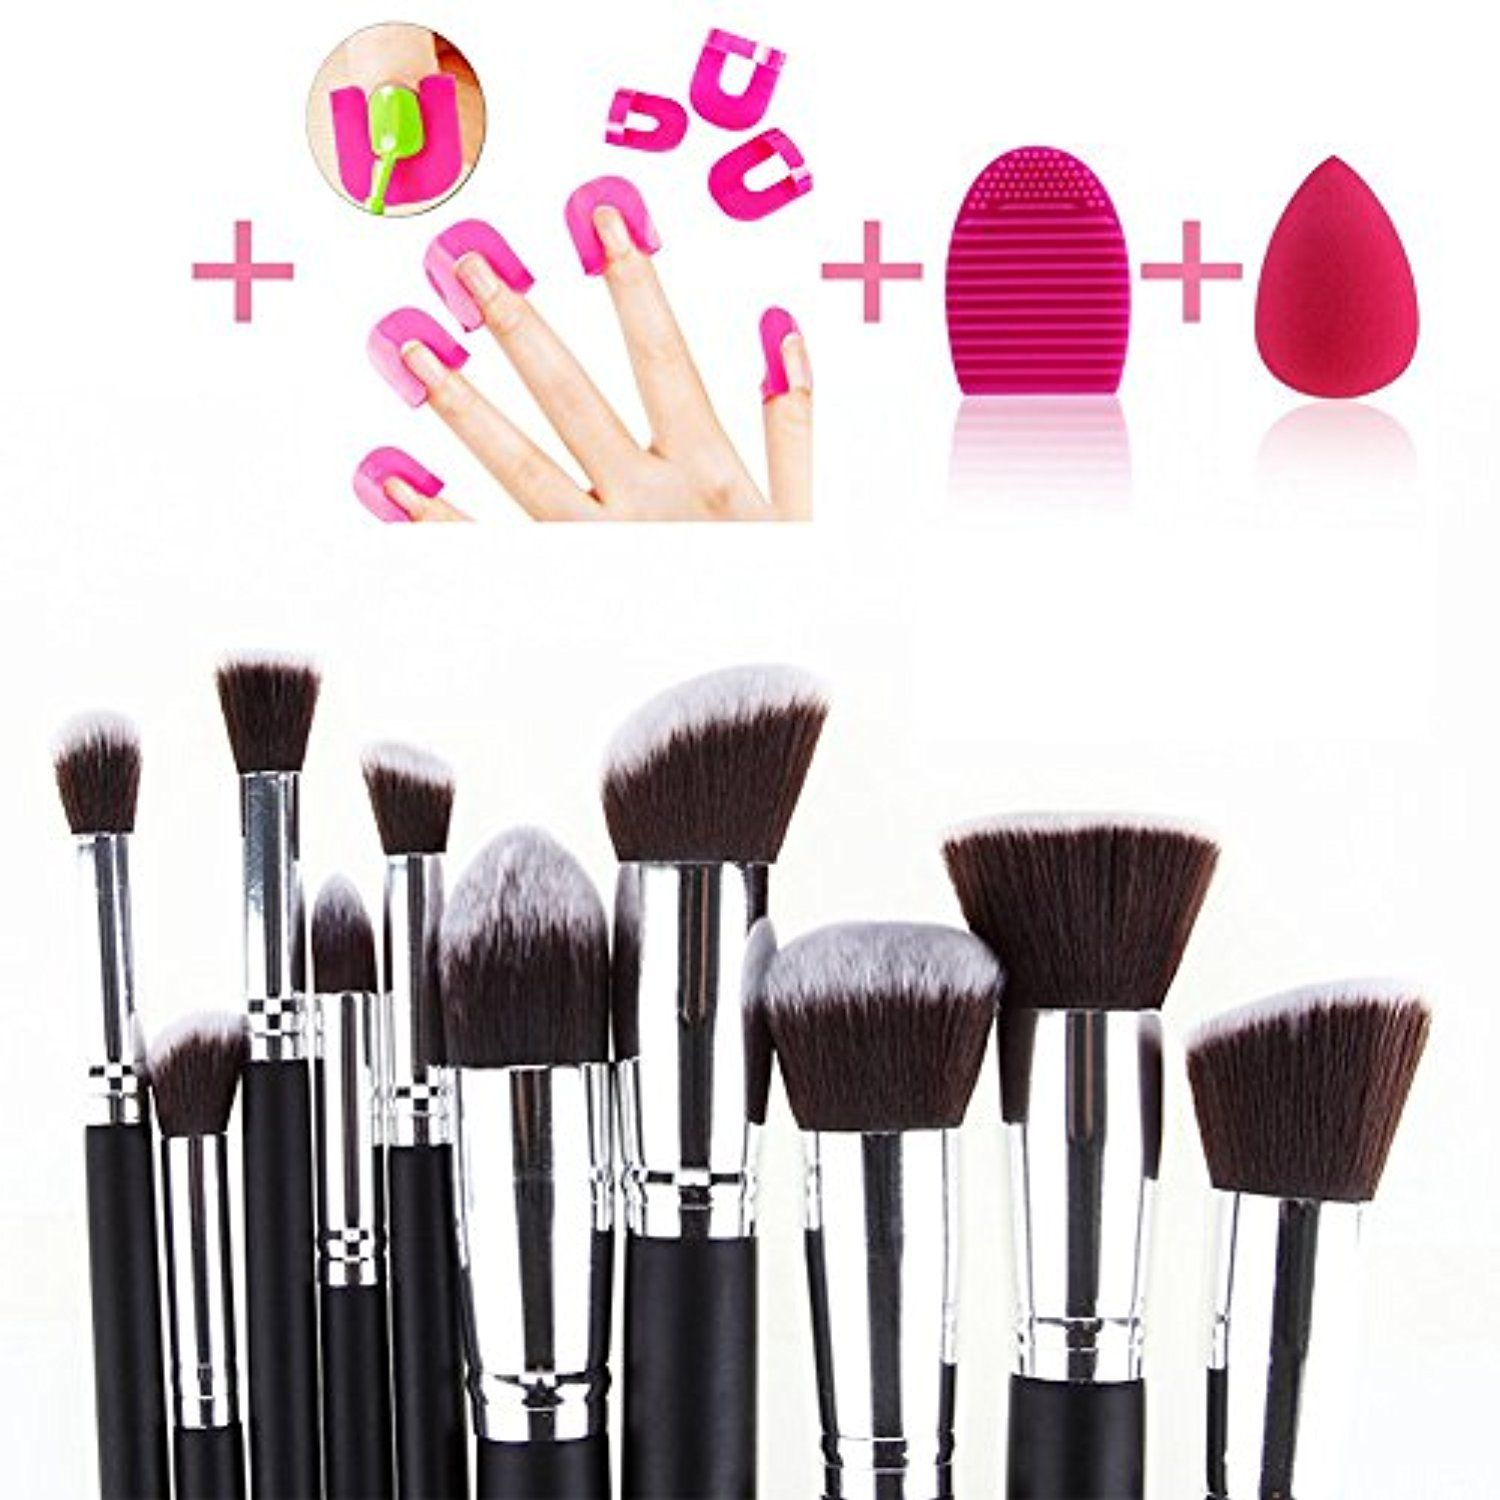 Pin on Makeup Brushes & Tools